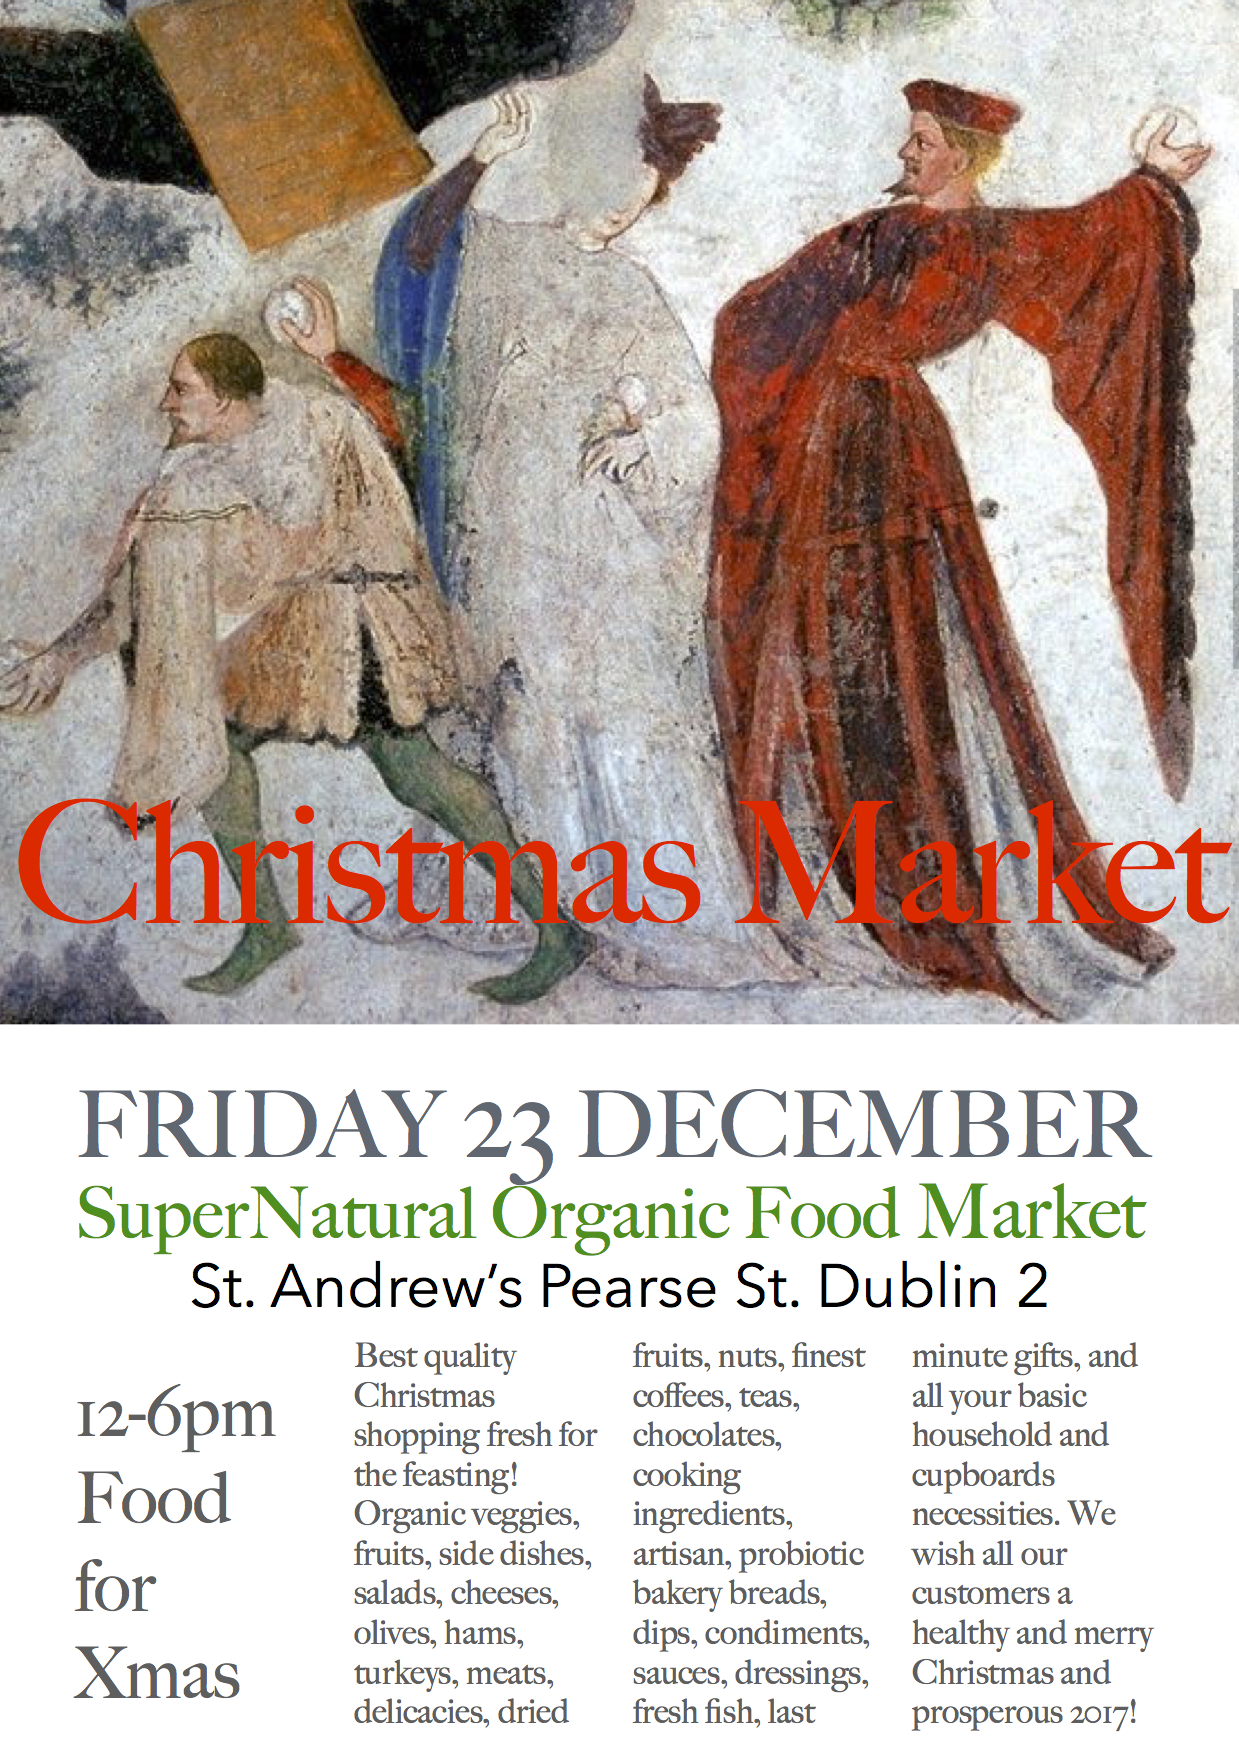 SuperNatural-Christmas-Markets-Arrangements